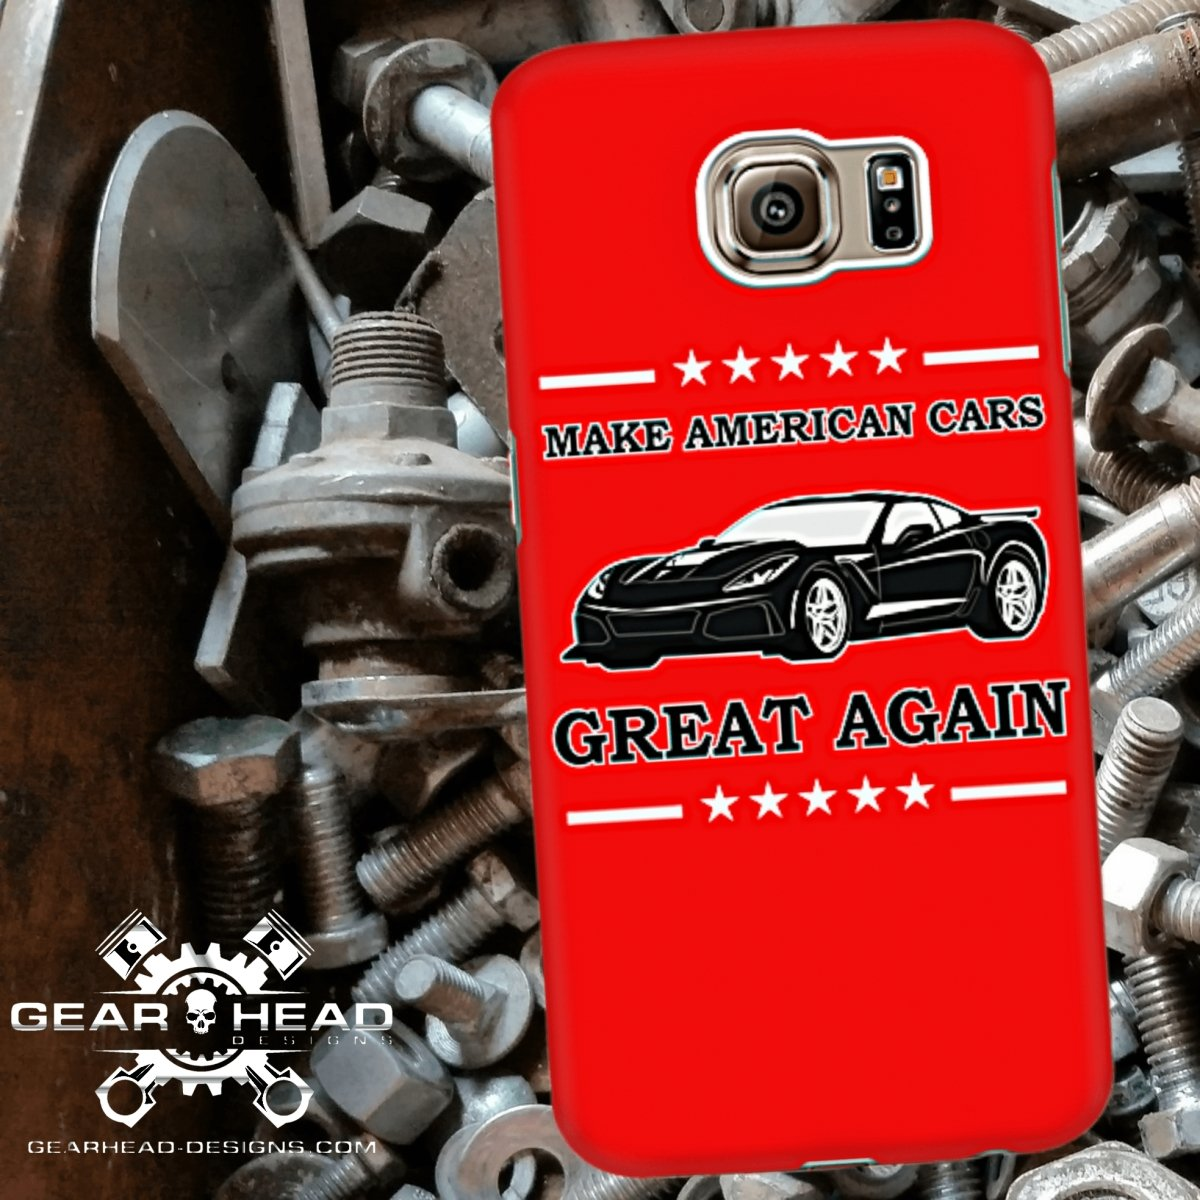 Make American Cars Great Again Corvette Phone Case - GearHeadDesigns